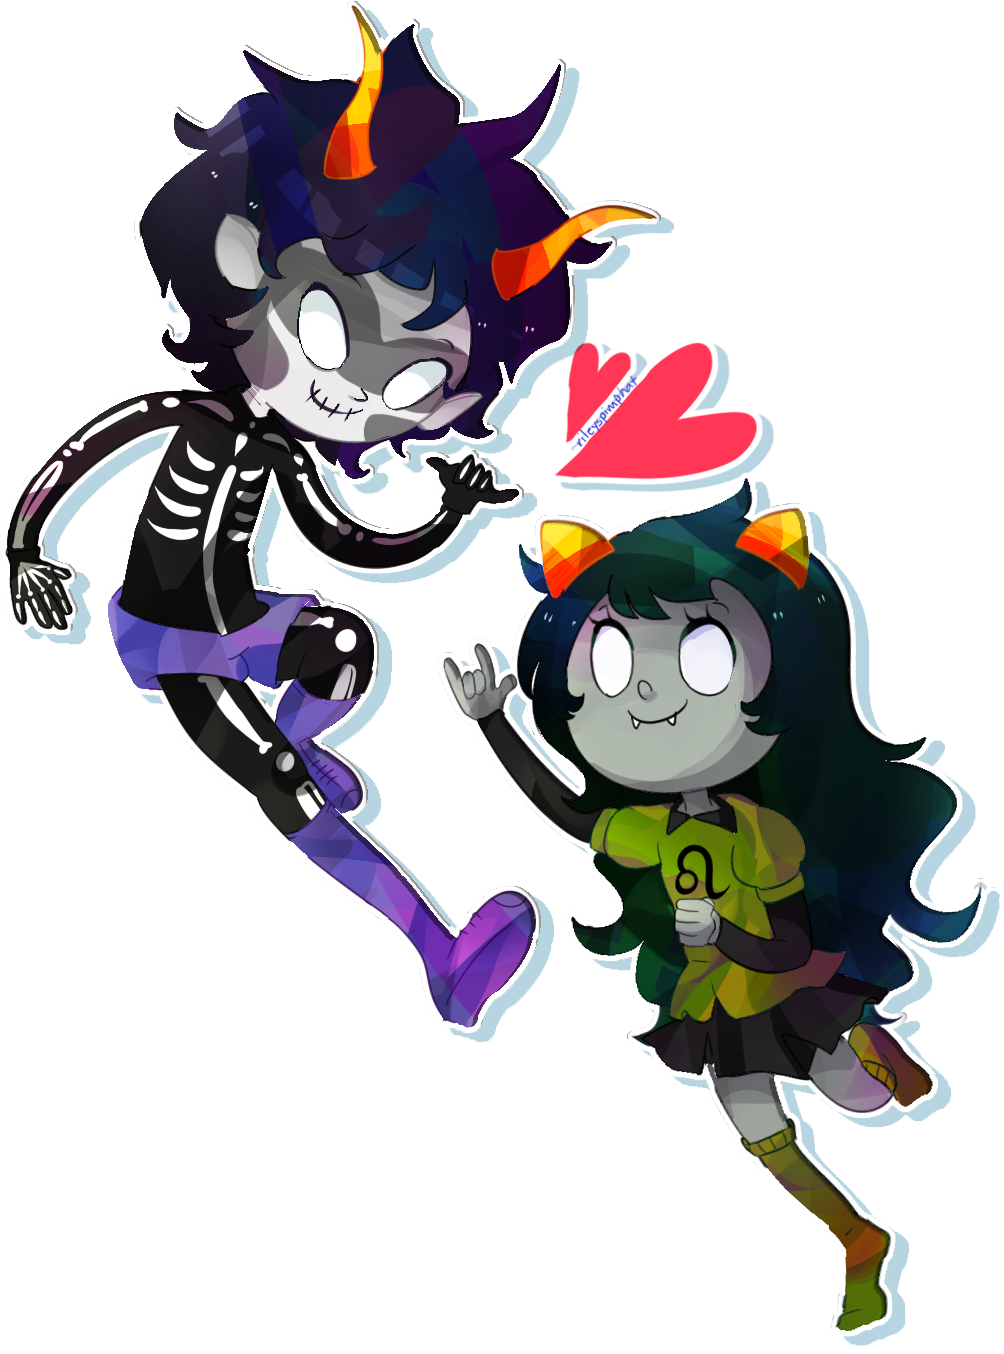 catty dames and juggalo boyfriends by kurloz-makara